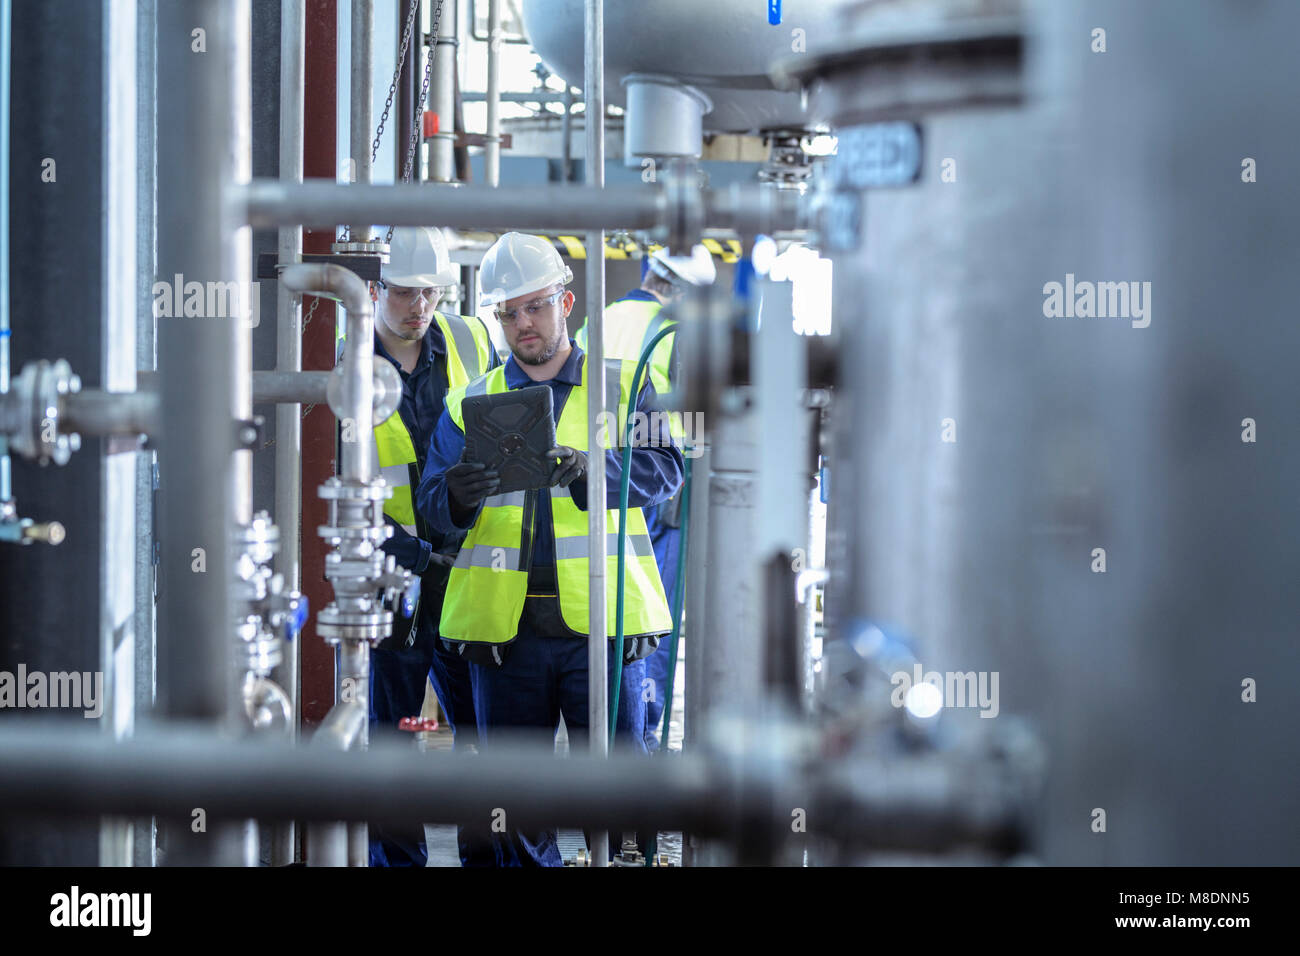 Apprentice engineers working on pipeline in industrial product facility - Stock Image